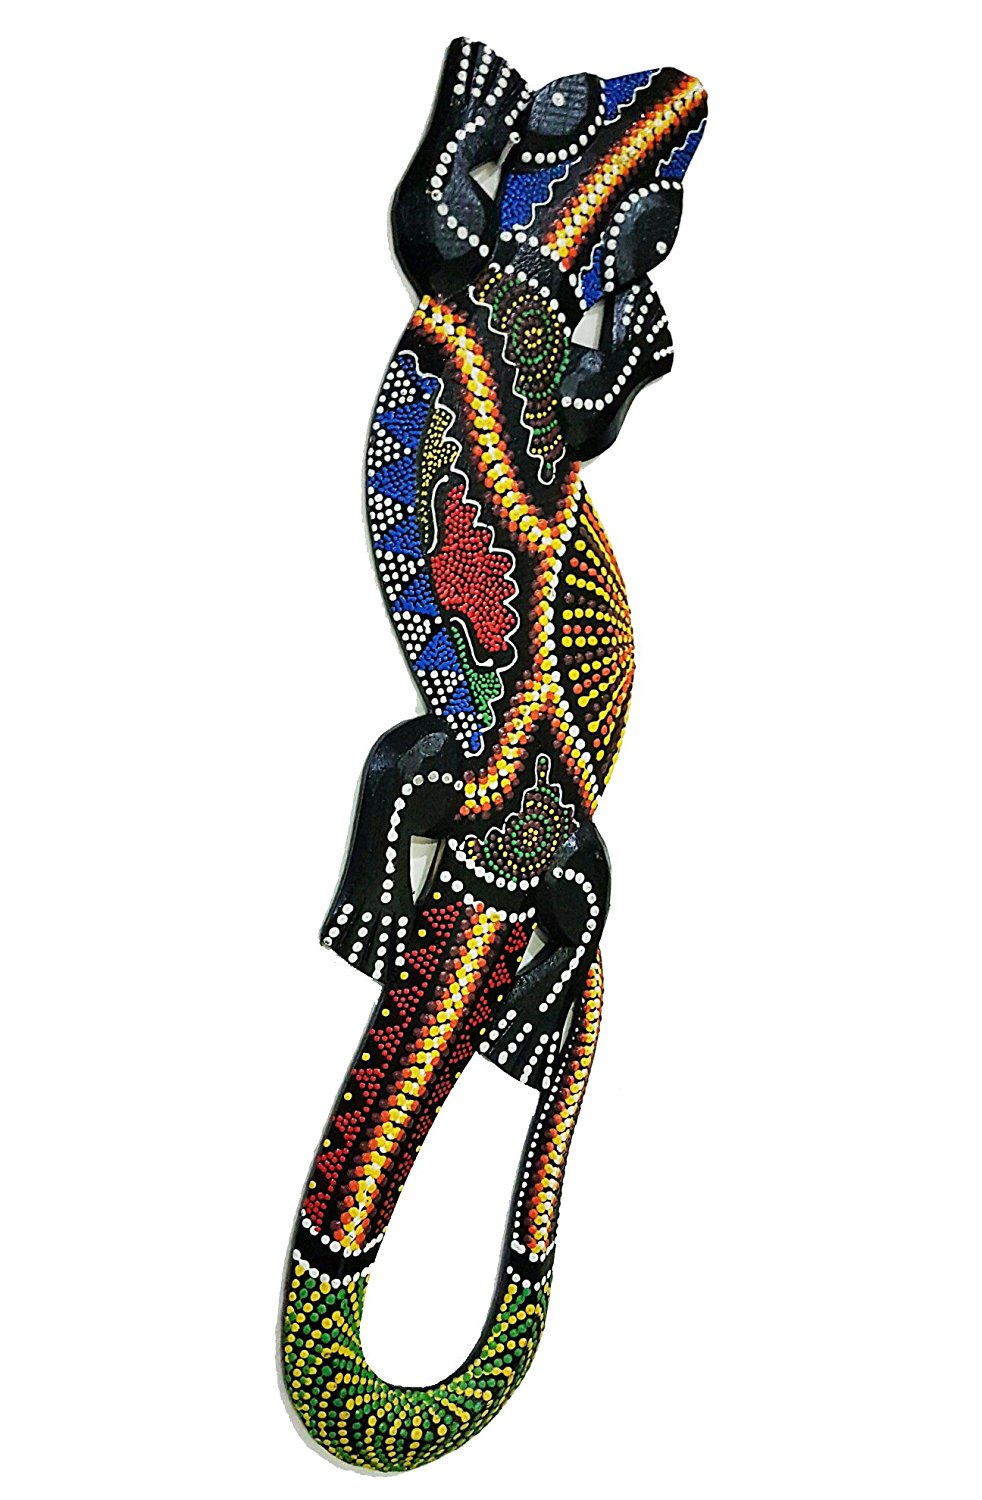 Buy Dot Painted Gecko Wooden Wall Hanging Lizard (Aboriginal Art) In Within Most Popular Gecko Wall Decor (View 2 of 20)